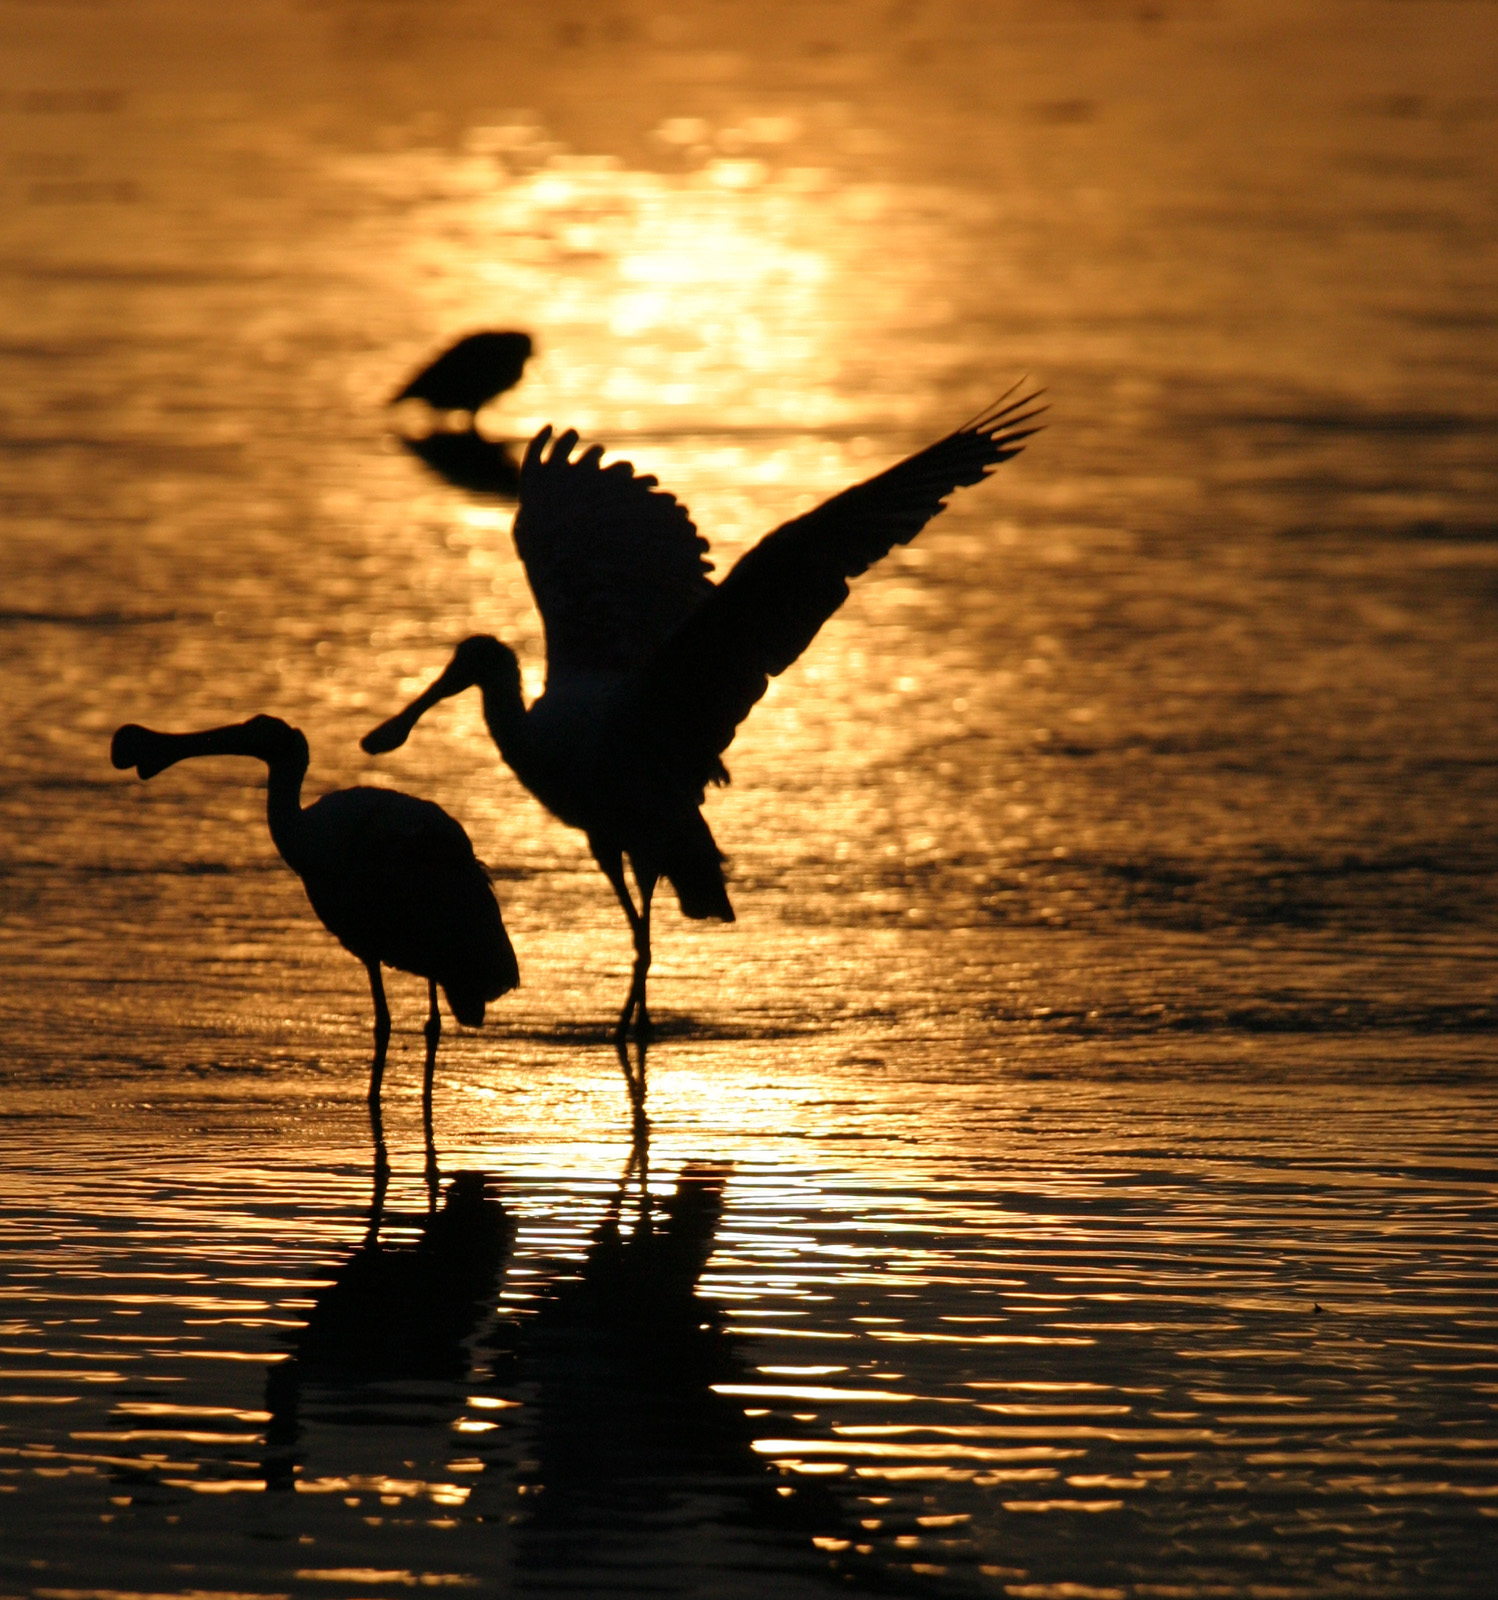 Roseate Spoonbill Silhouettes